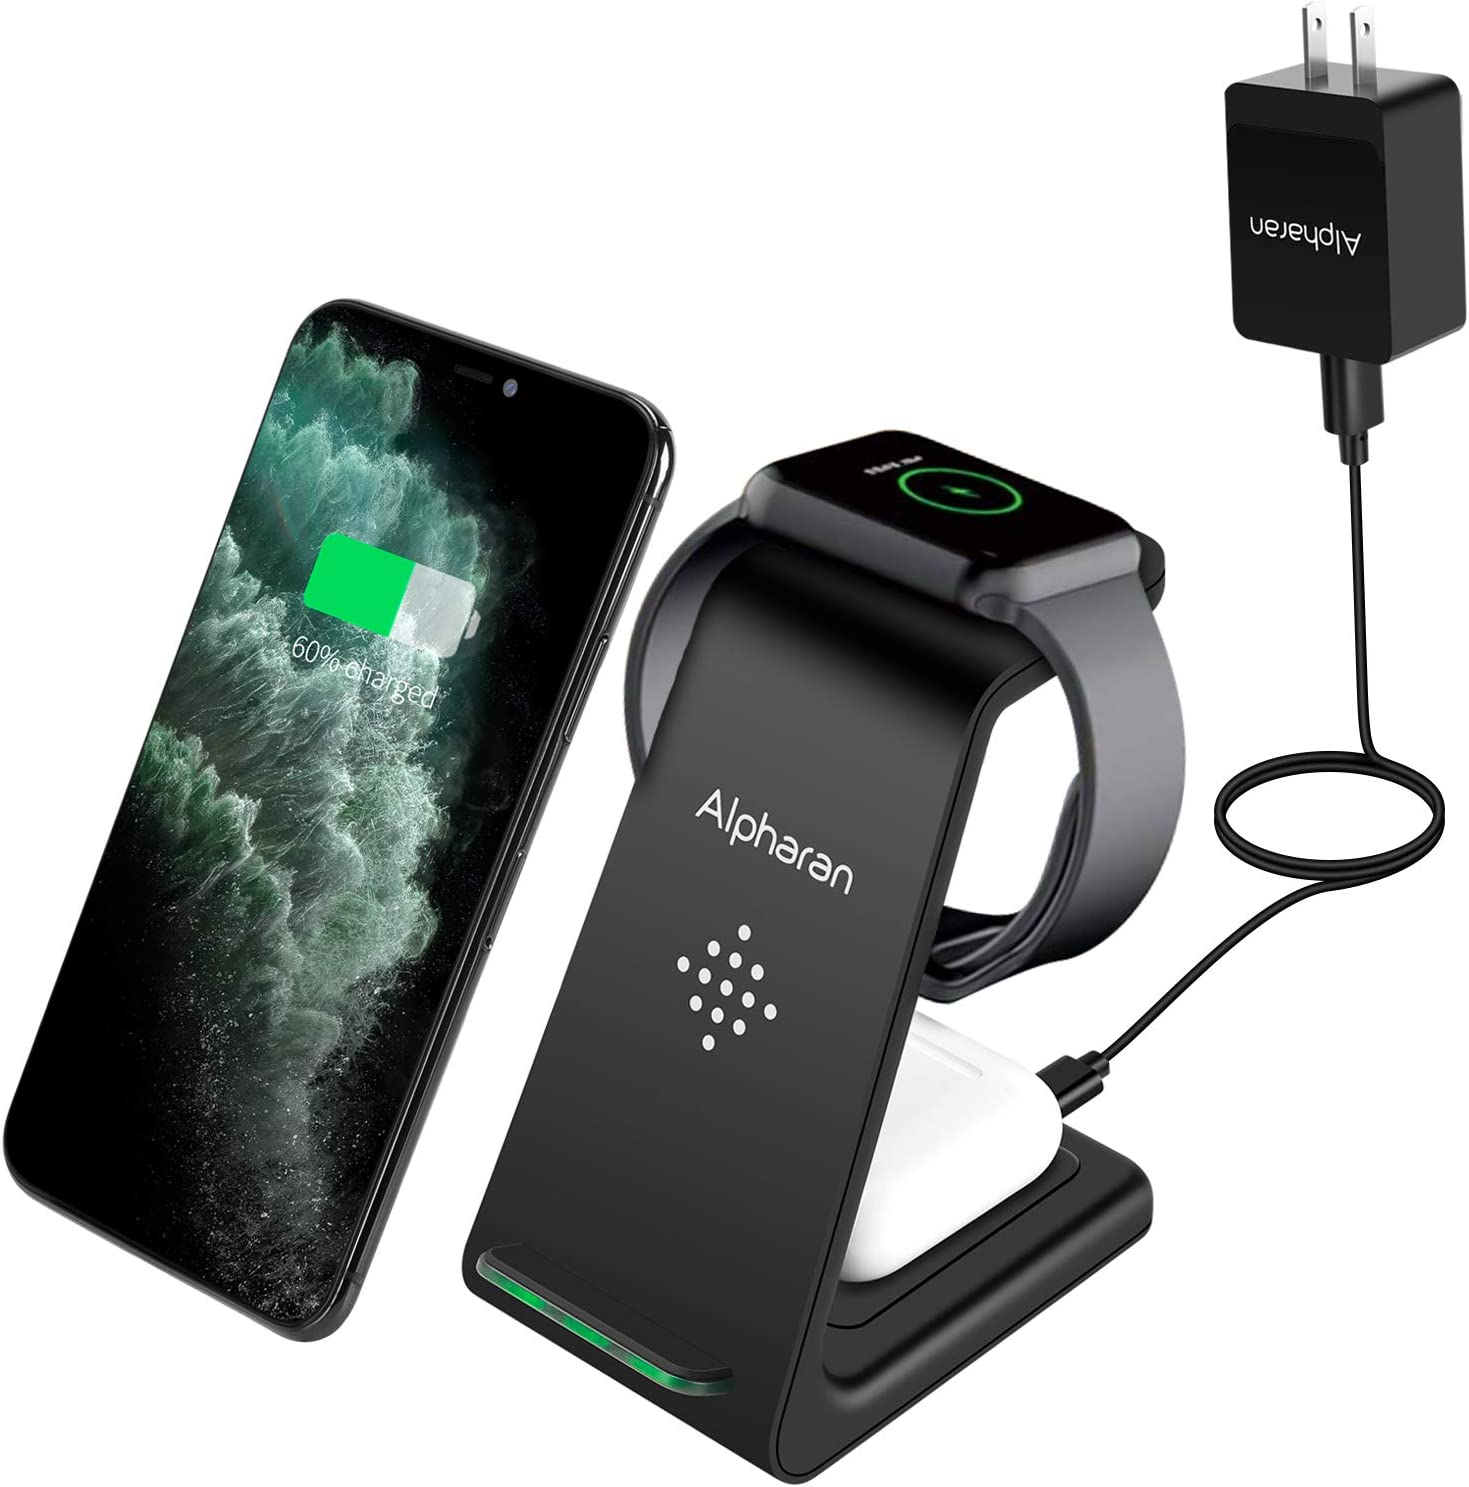 Wireless Charger,3 in 1 Wireless Charging Station,Qi Fast Charging Stand Dock for Apple Watch Series,AirPods,iPhone 11 Pro Max X XR XS 8 Plus with QC 3.0 Adapter by Alpharan (Black)